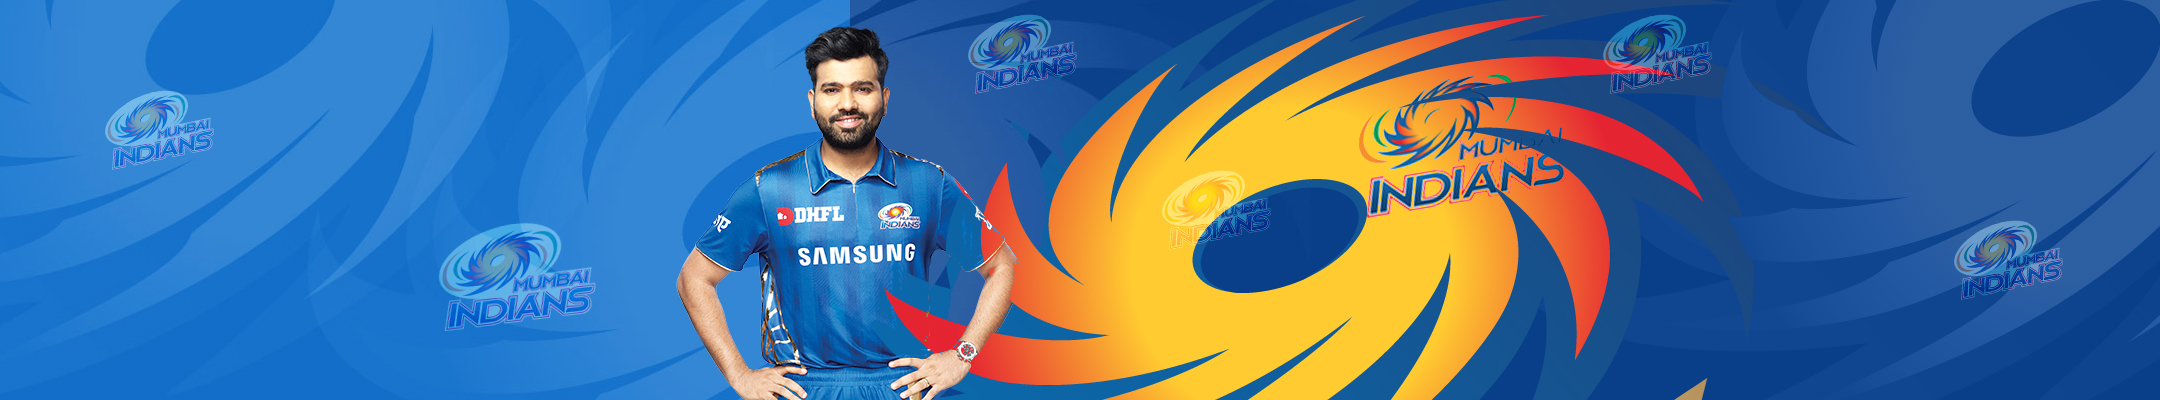 Official Mumbai Indians International Store - Authentic MI merchandise, jerseys, T-shirts